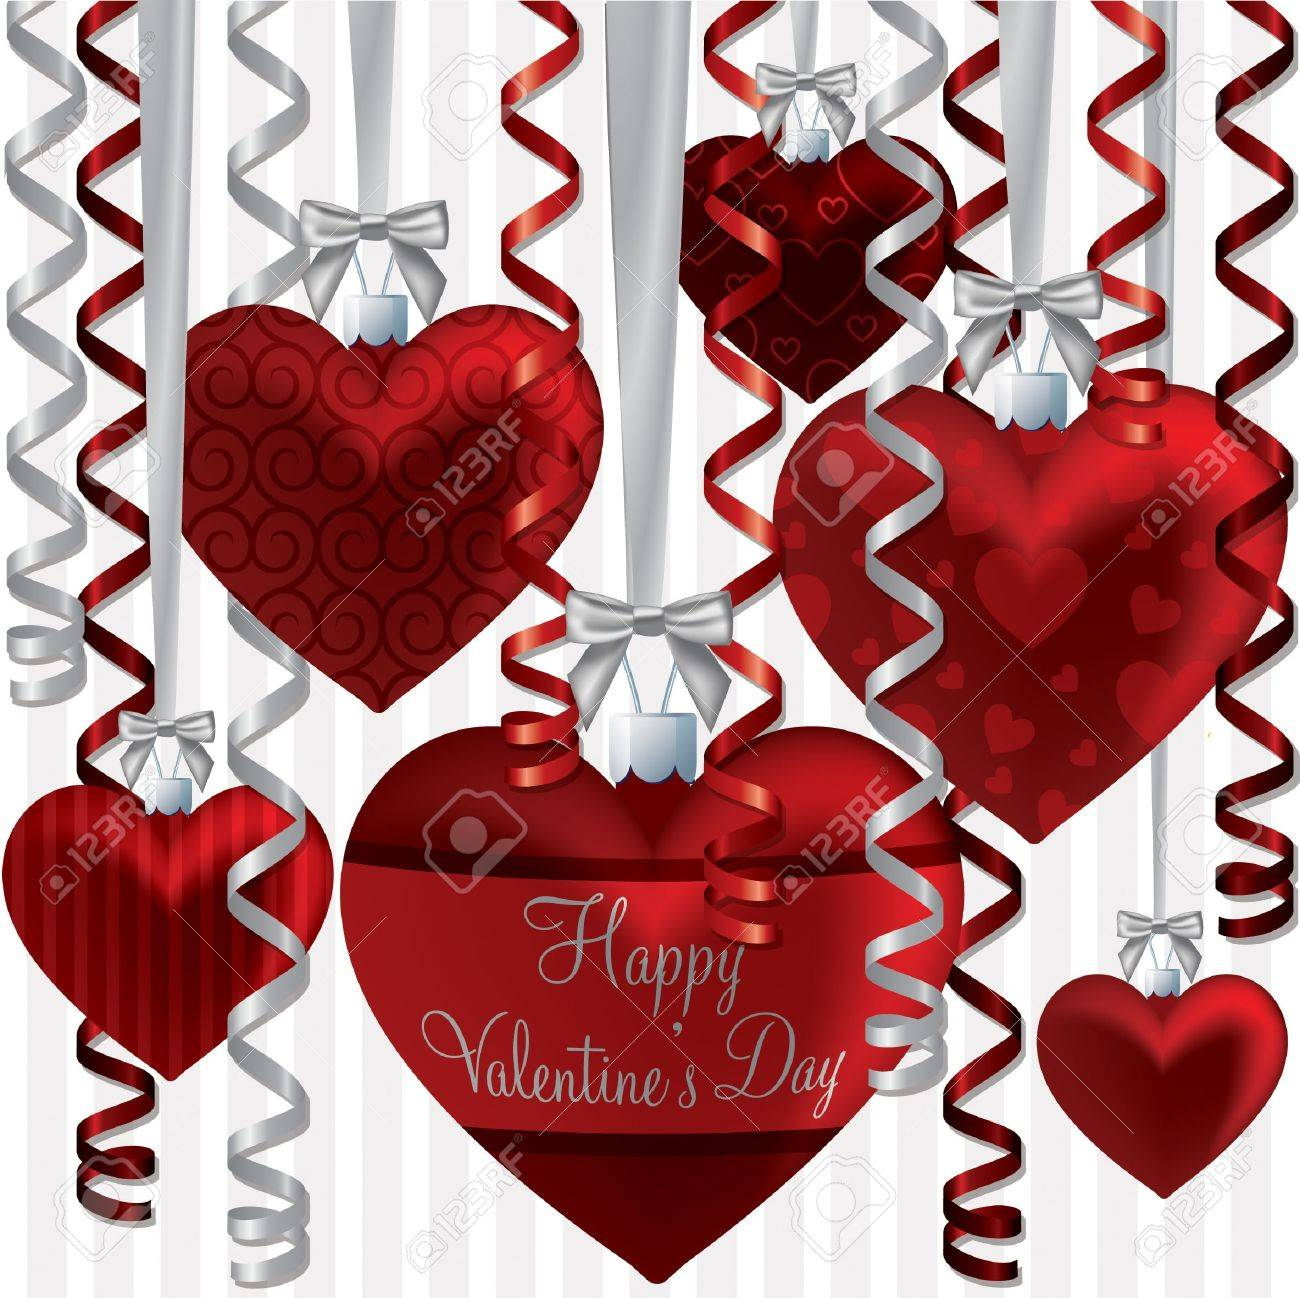 Curling ribbon heart bauble Happy Valentine s Day card in vector format Stock Vector - 19644734